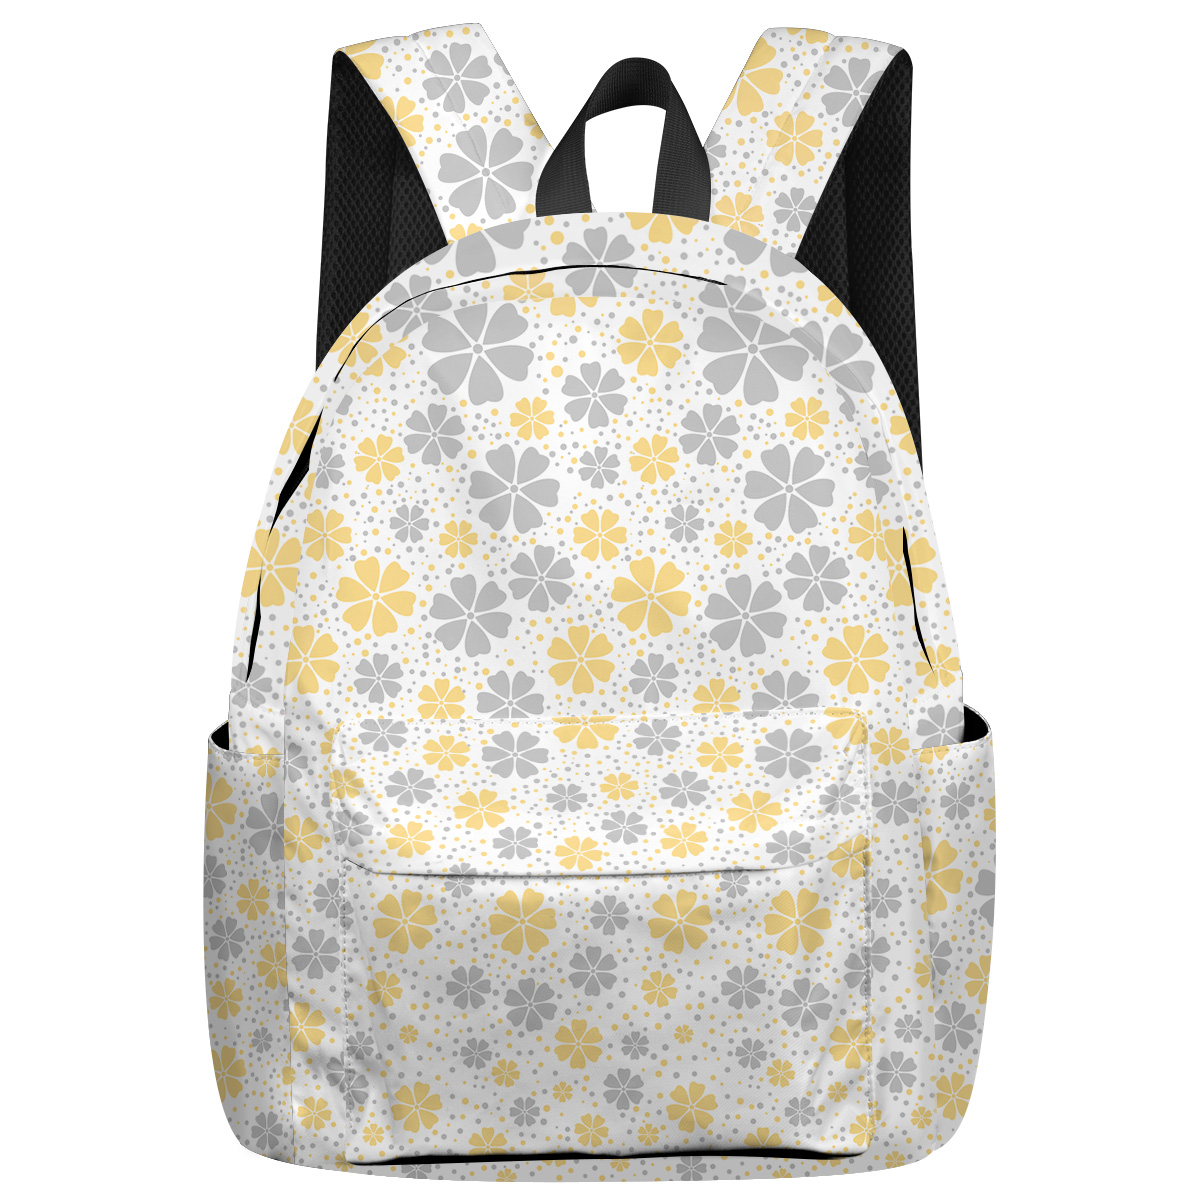 Plant Flowers And Plants Bottle Side Pockets Outdoor Activities Notebook Backpack Athletic Backpack Business Daypack Stain